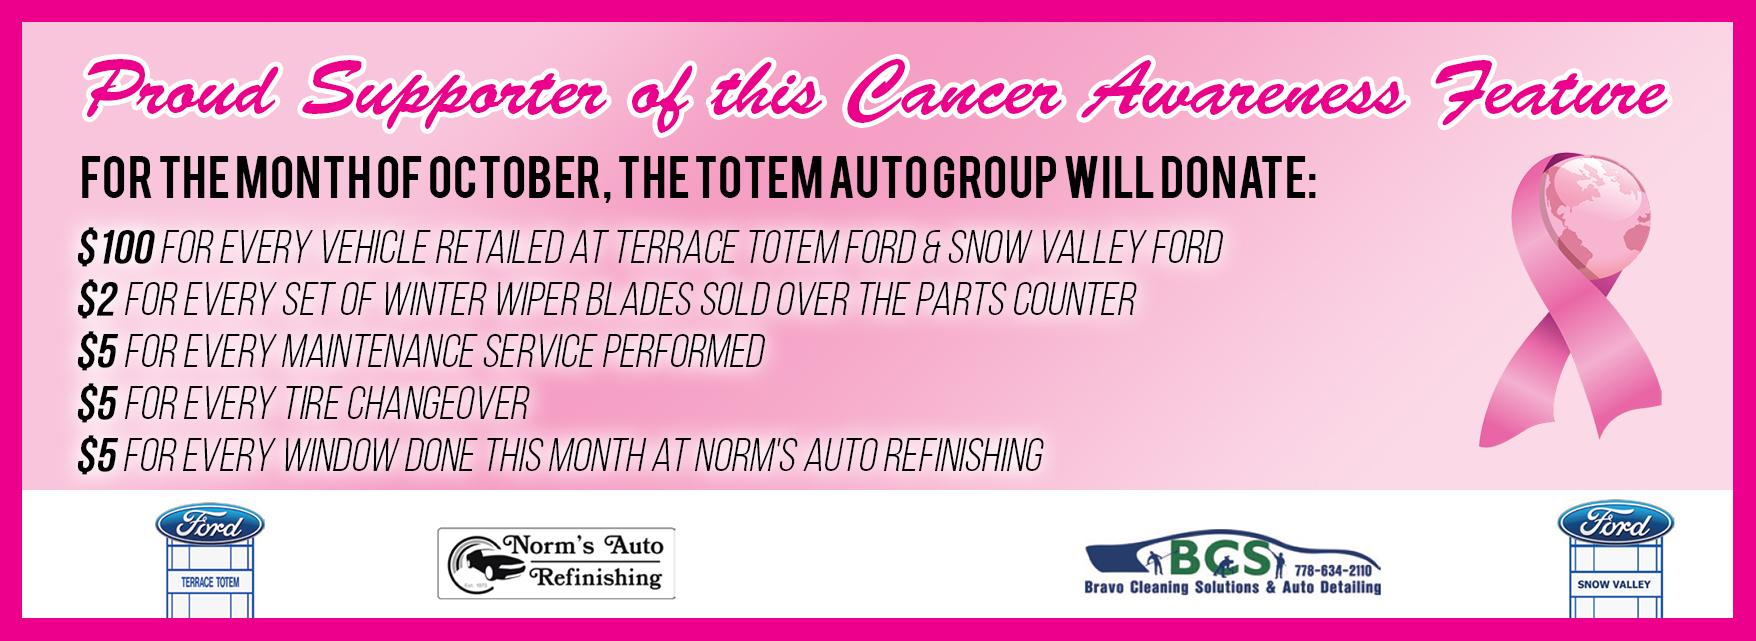 Terrace Totem Ford Snow Valley Ford Breast Cancer Awareness Month